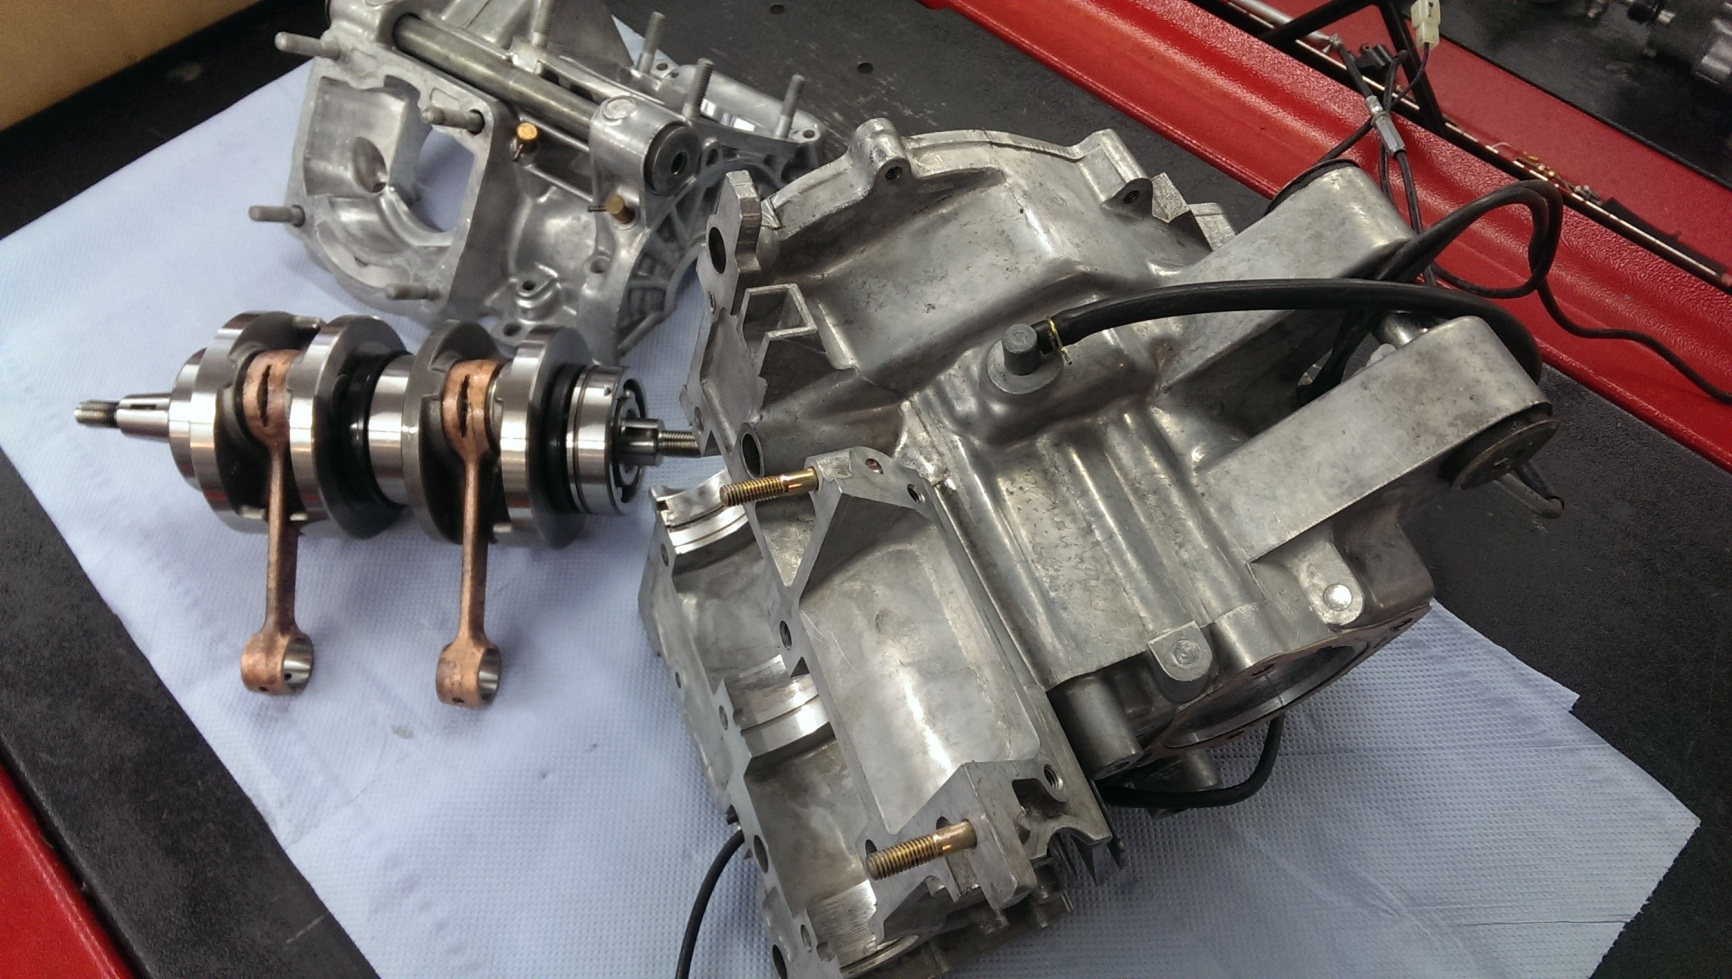 RS 250 Engine Rebuild and full Overhaul